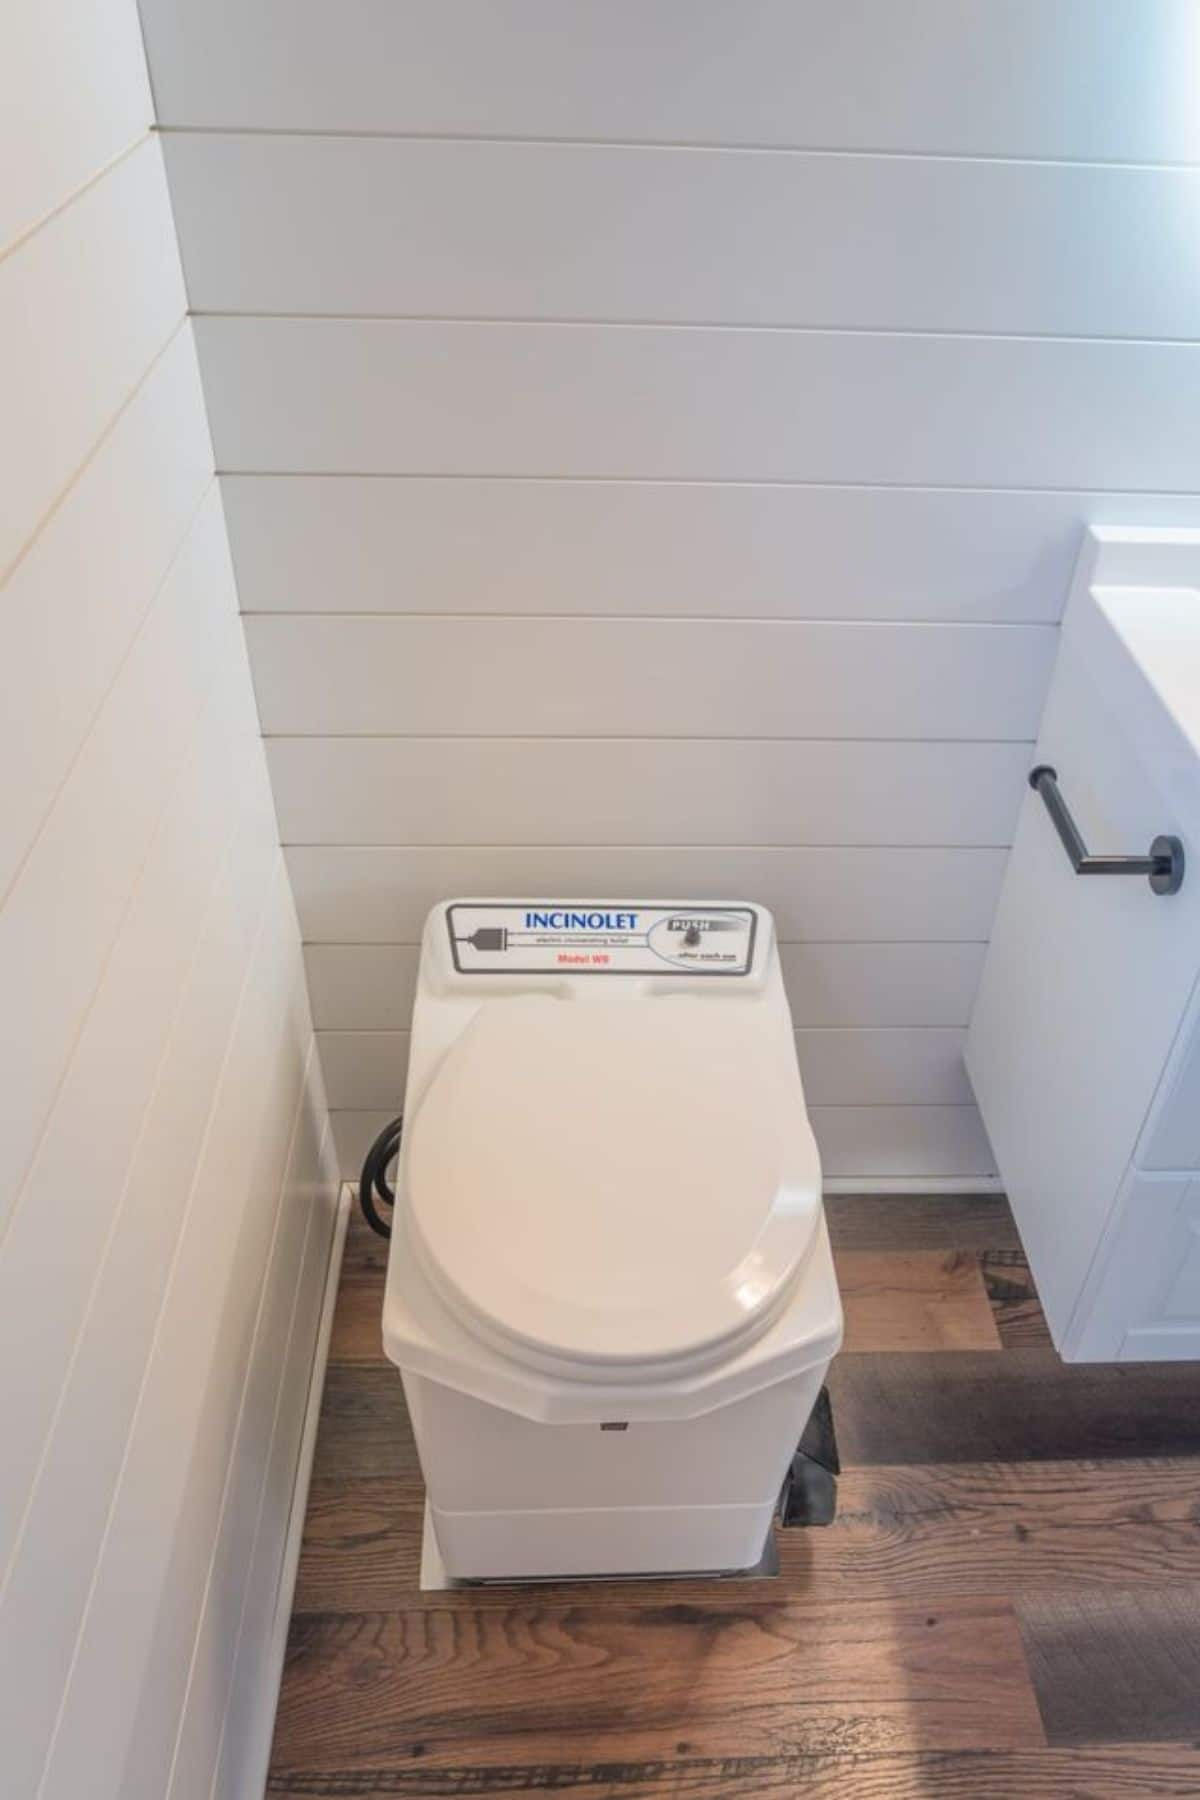 Compost toilet against white shiplap wall by white vanity